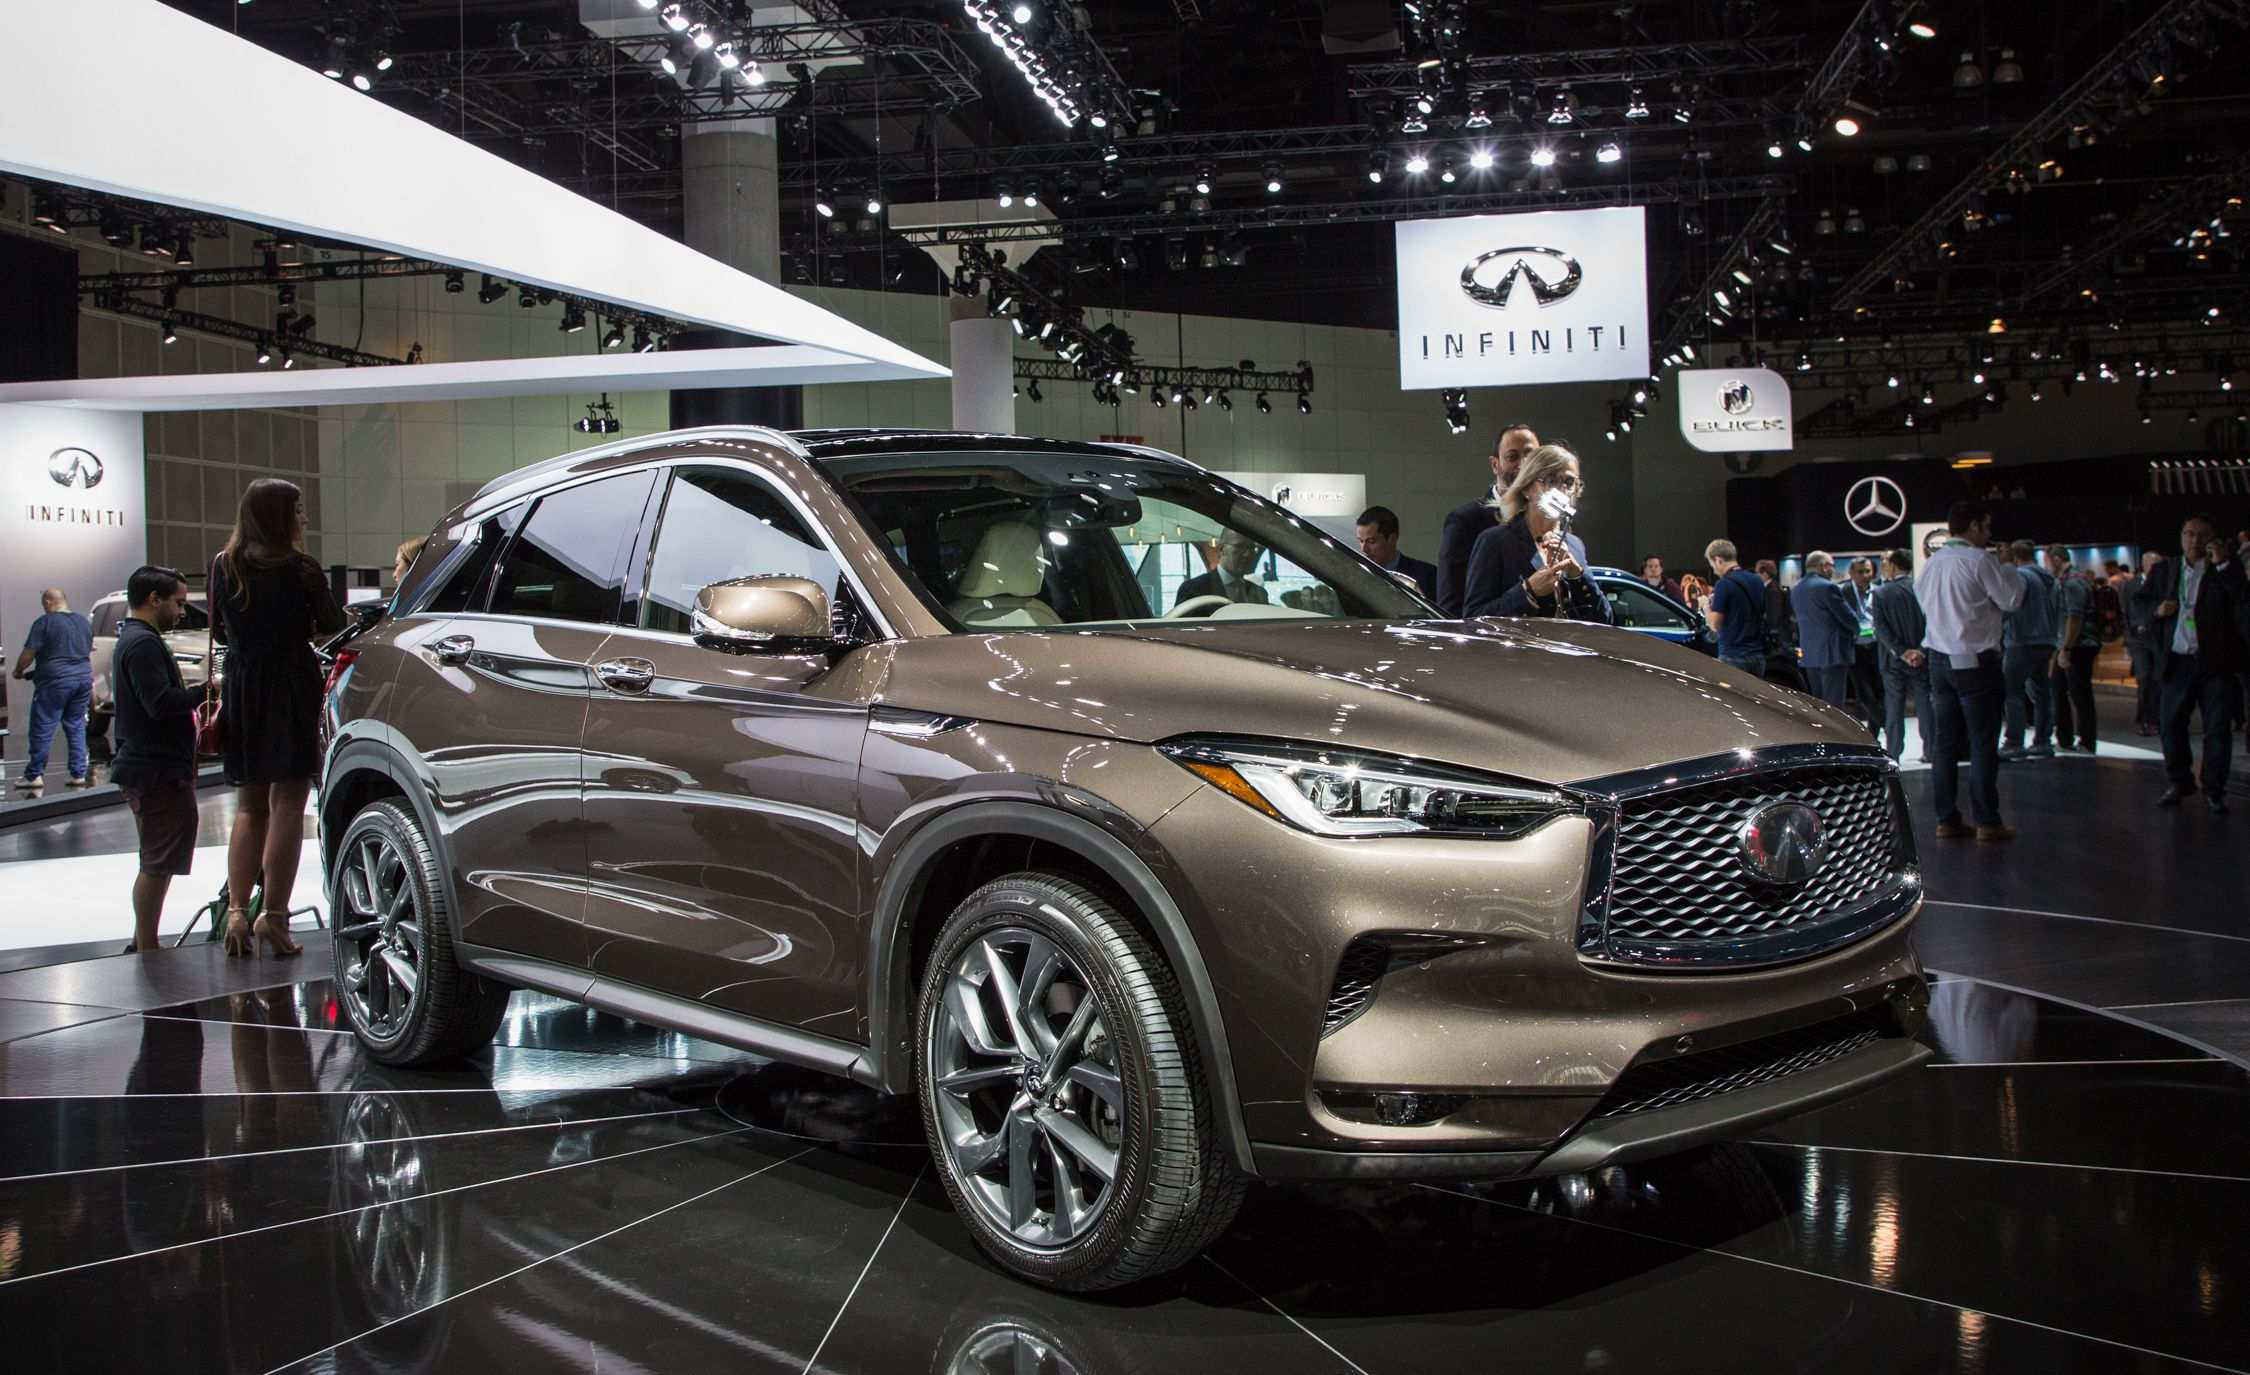 64 Gallery of 2019 Infiniti Vehicles Picture Spesification with 2019 Infiniti Vehicles Picture